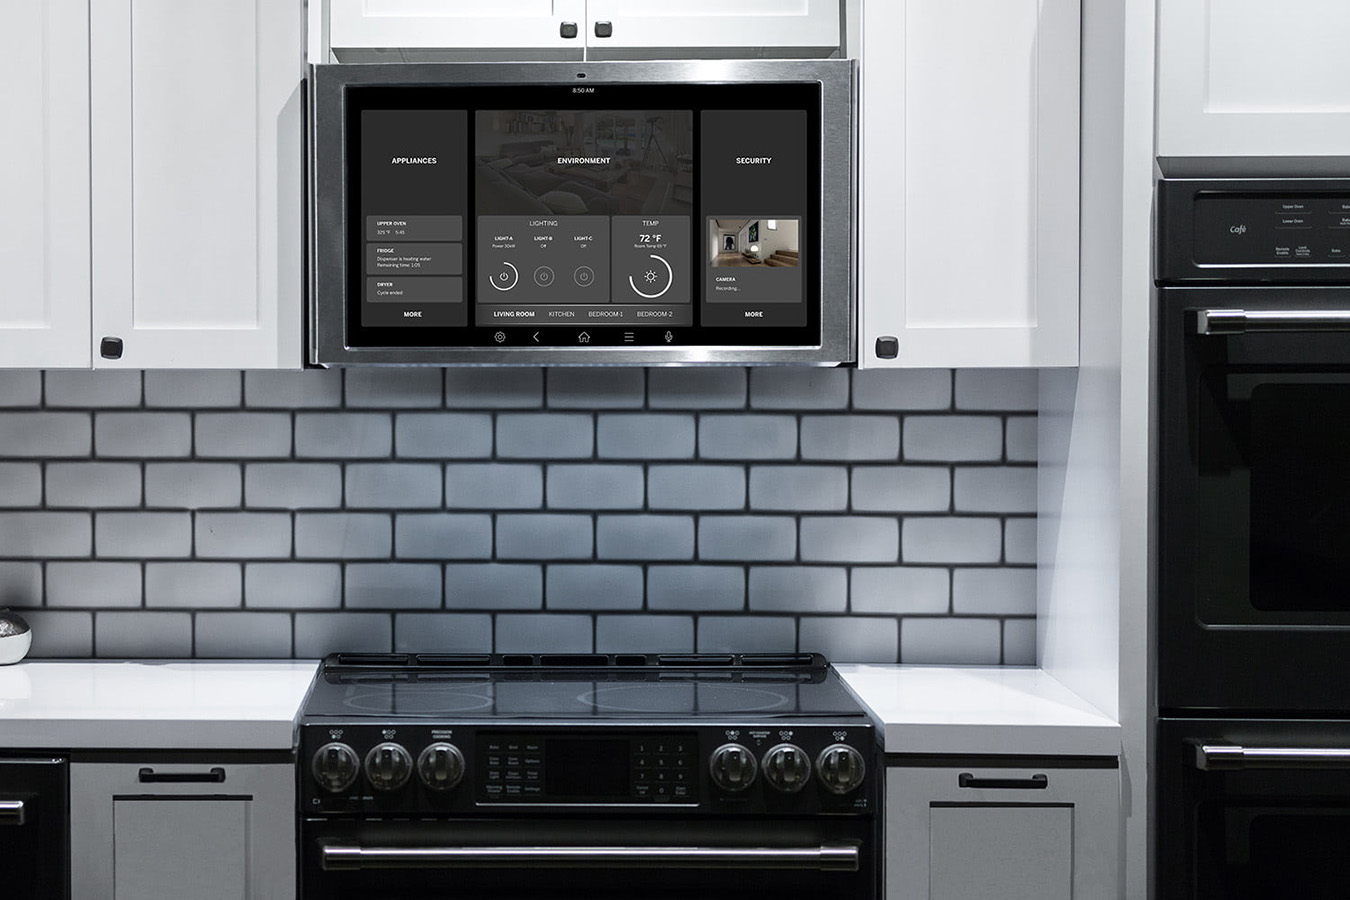 smart-home-trends-ge-kitchen-hub-cs-1500x1000. GE ha convertido el horno mural en un centro de cocina precisa y de entretenimiento con esta pantalla que interactúa con el asistente virtual Alexa de Amazon y de Google, reproduce videos y listas de música y controla dispositivos inteligentes Zigbee y Z-Wave.